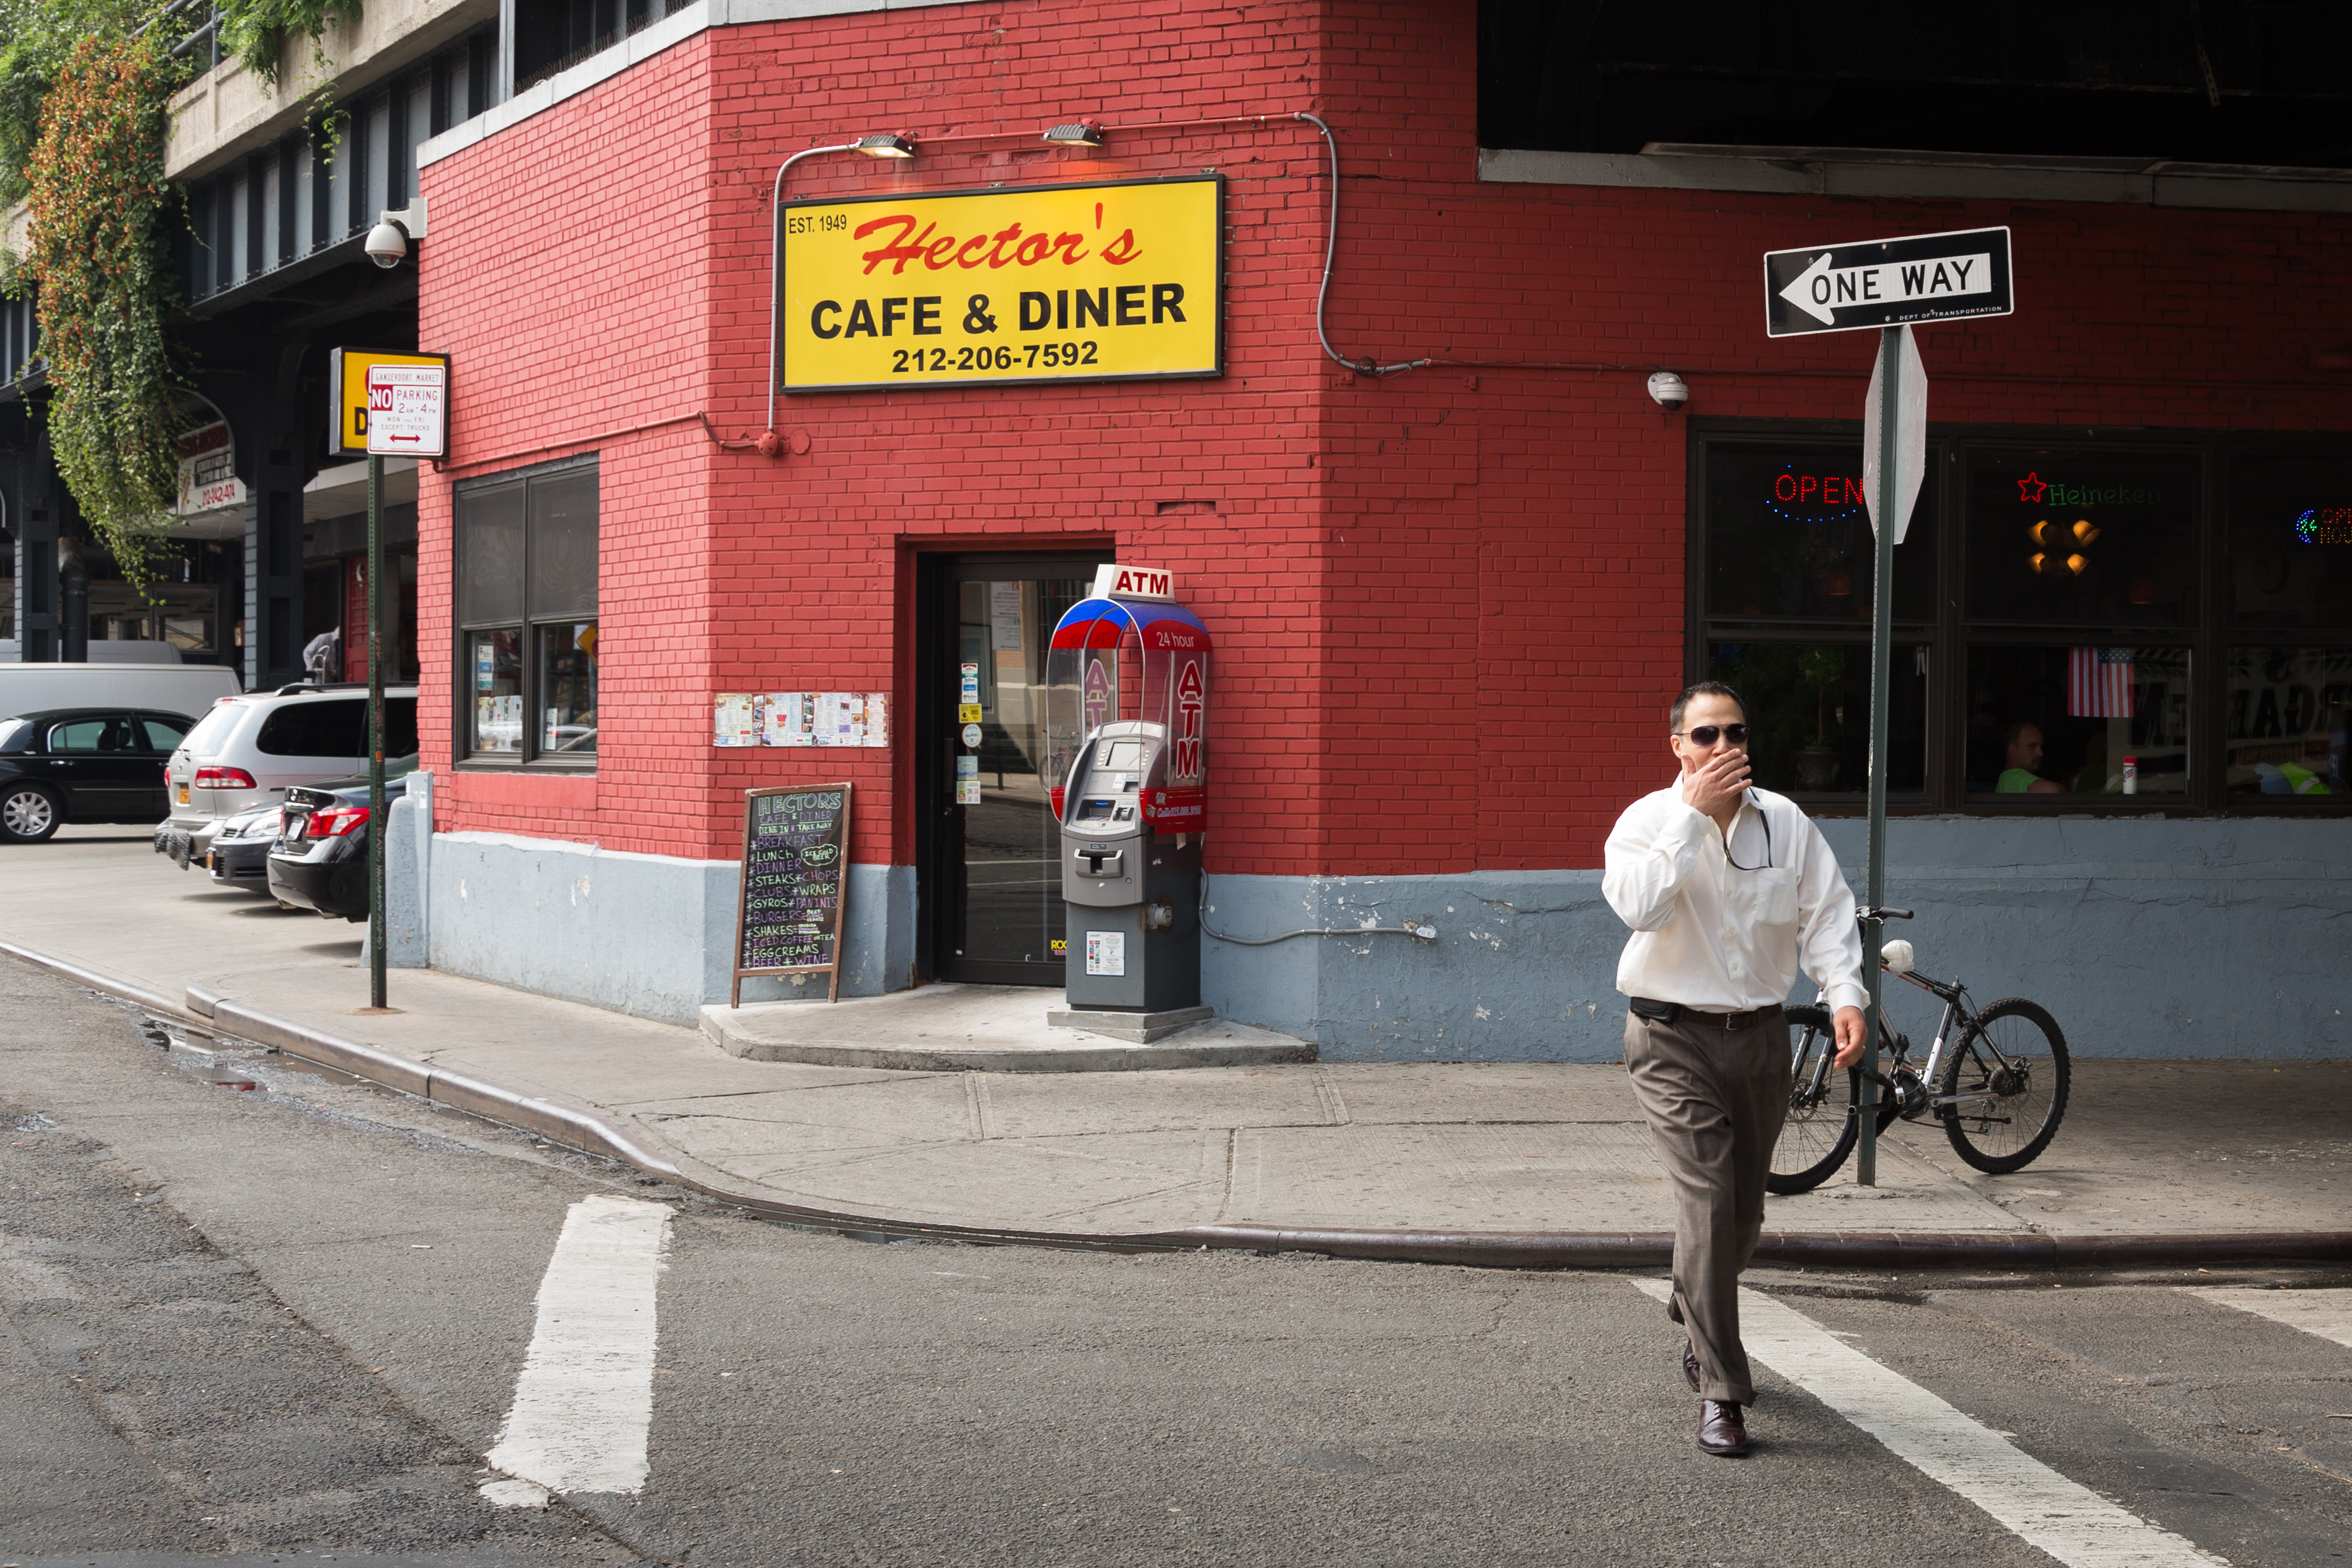 New York City Hectors Cafe And Diner